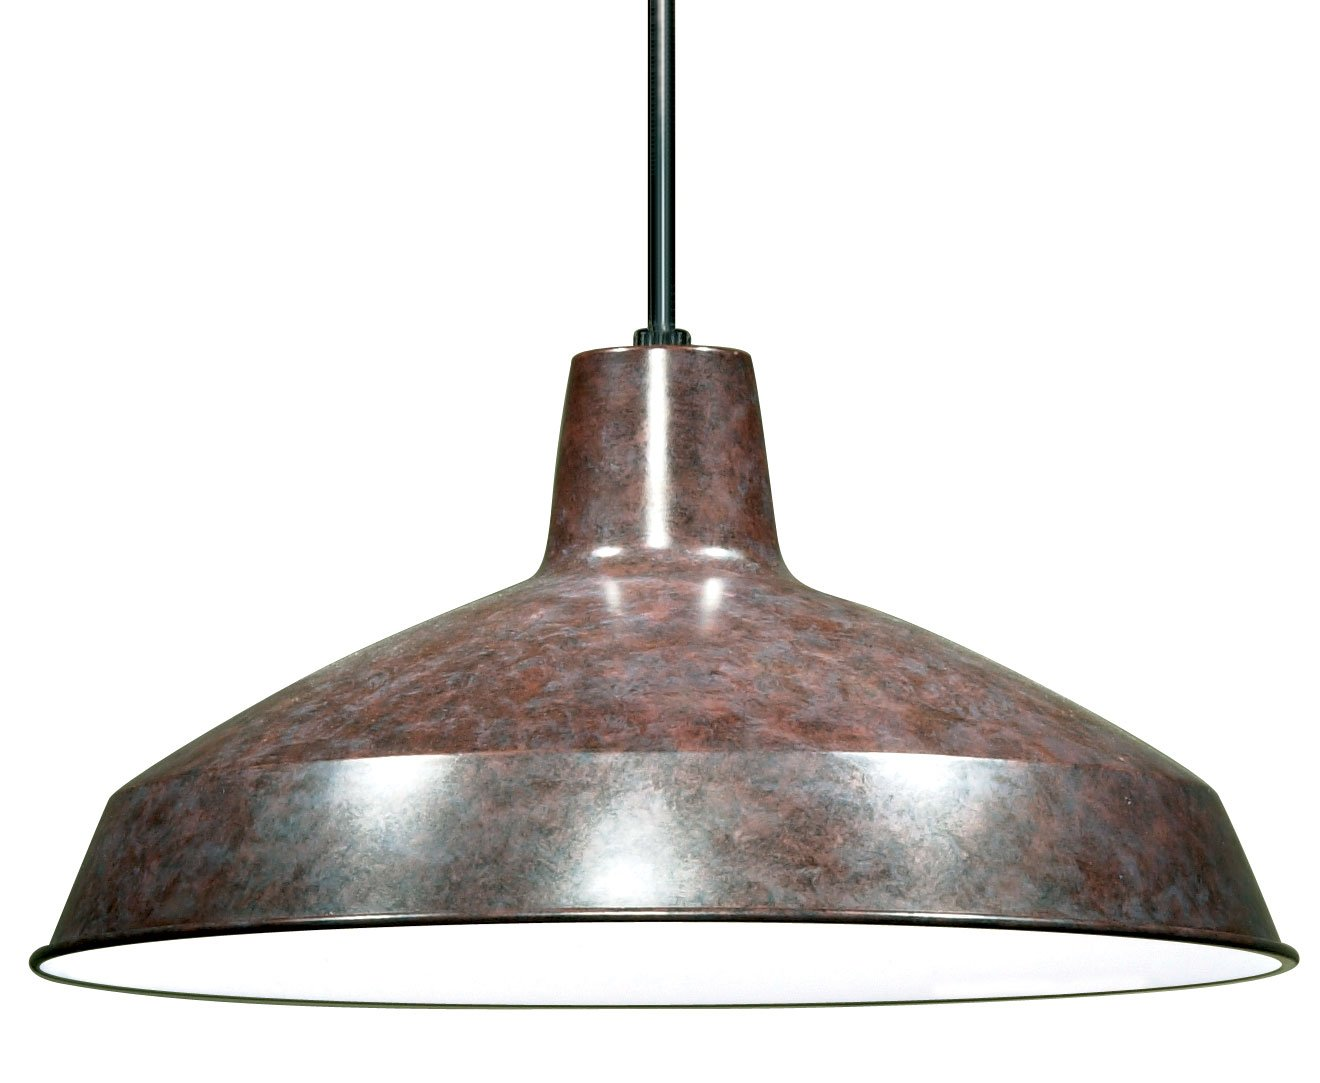 stainless steel lighting fixtures. Nuvo Lighting SF76/662 Warehouse Shade, Old Bronze - Ceiling Pendant Fixtures Amazon.com Stainless Steel S